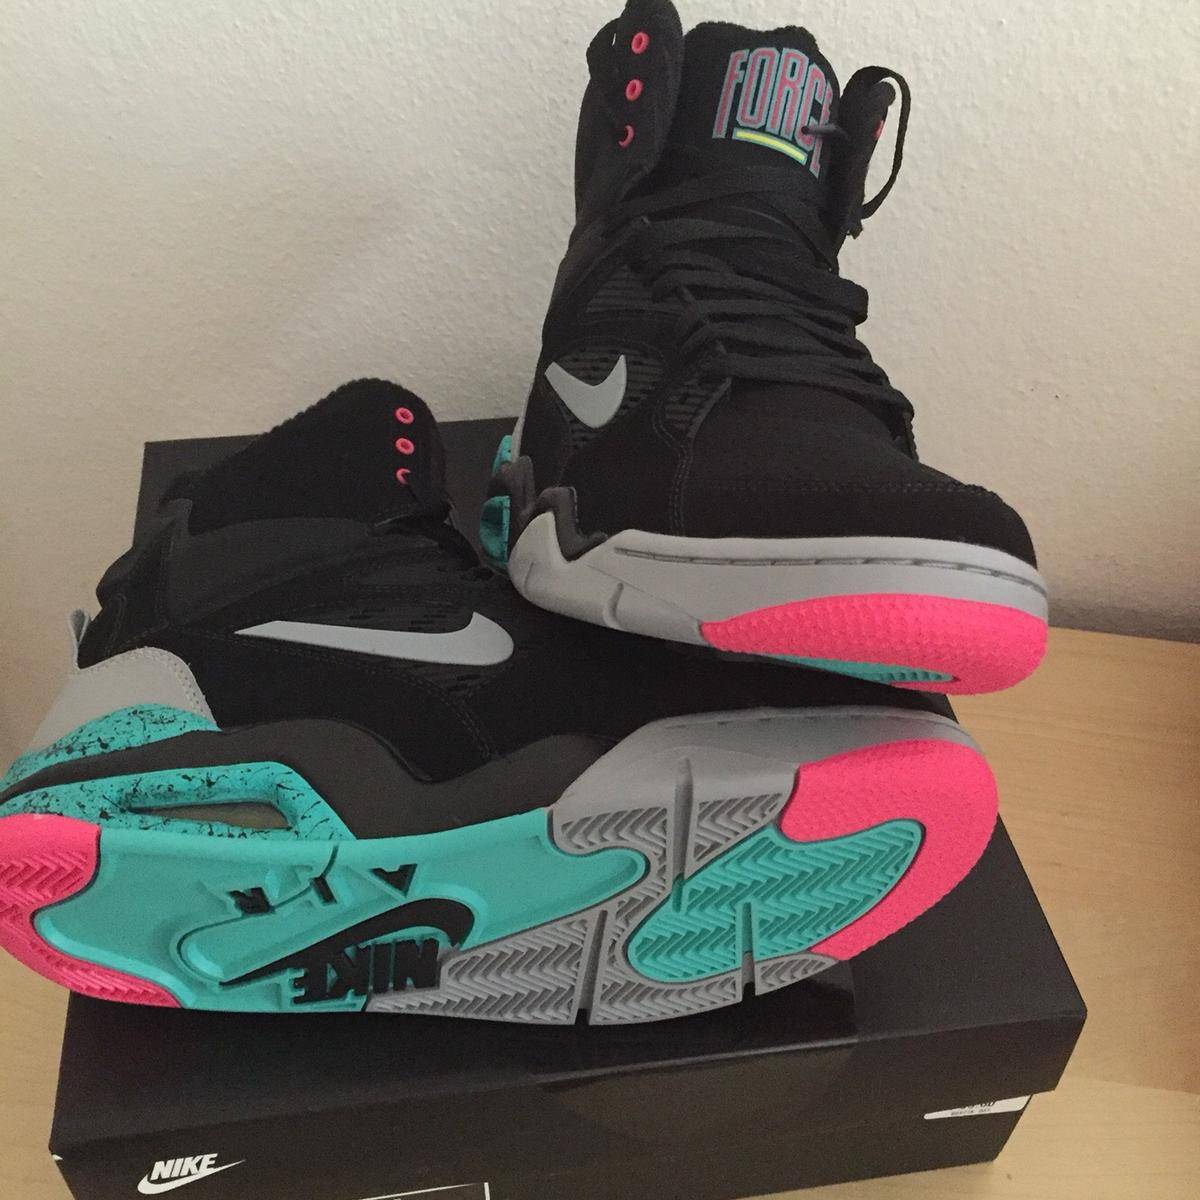 Nike air command force us 88.5